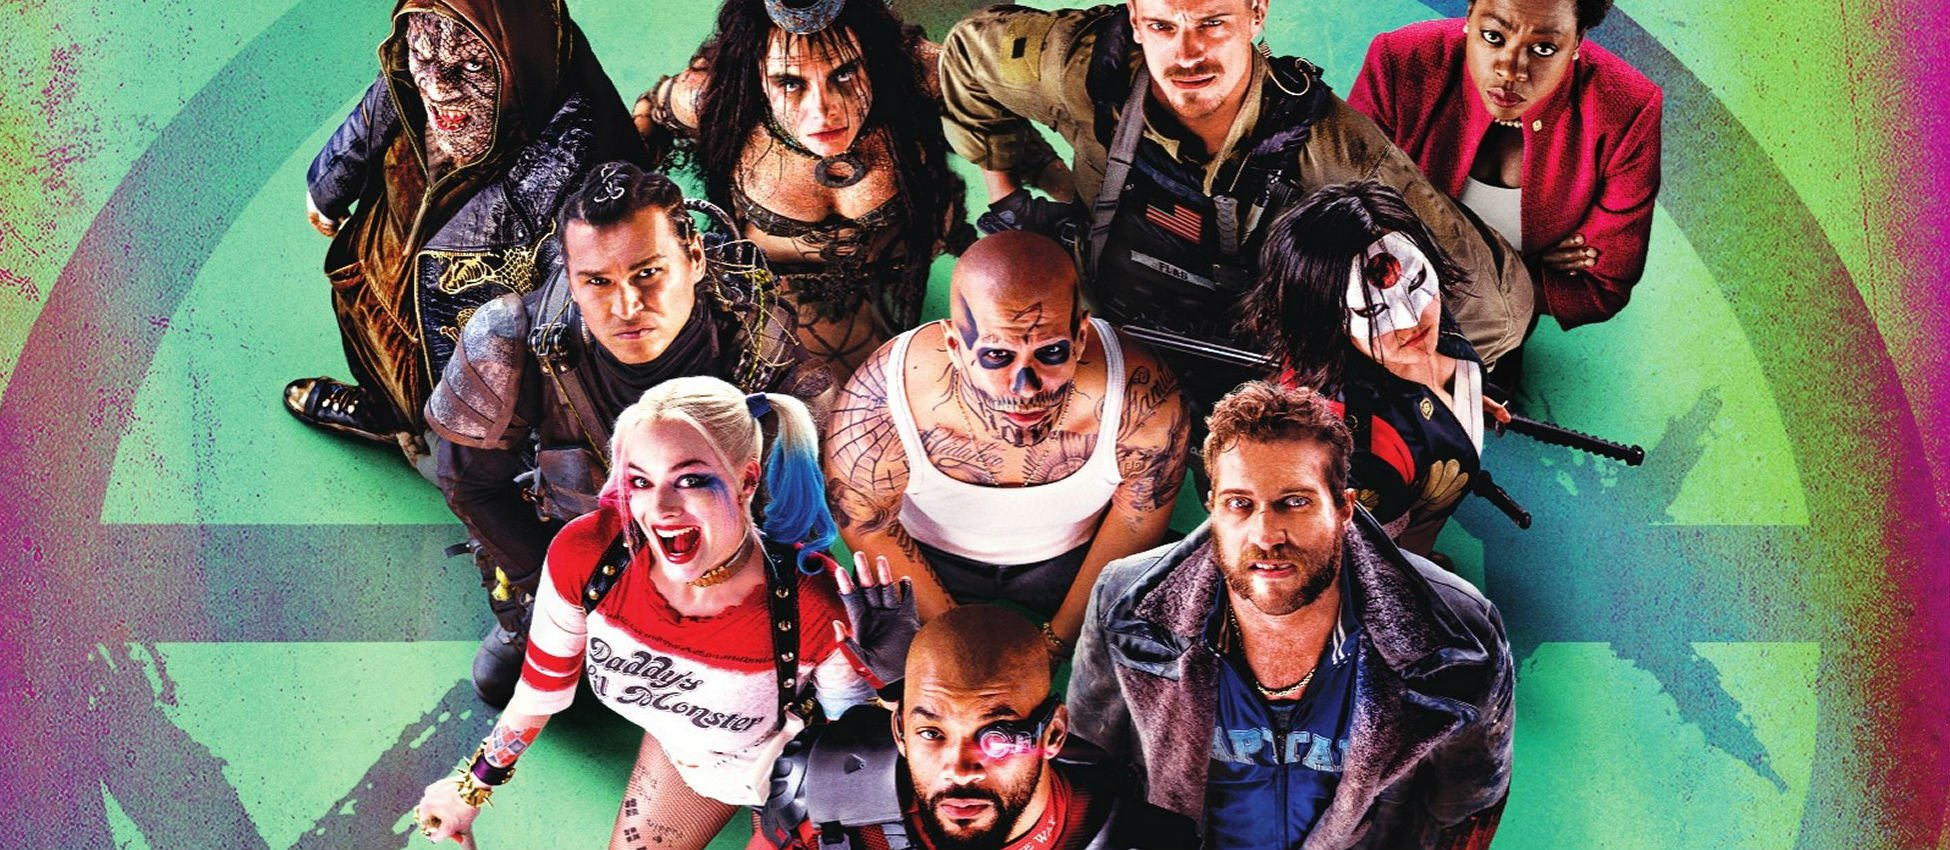 Suicide Squad 2 Could Start Filming In 2018